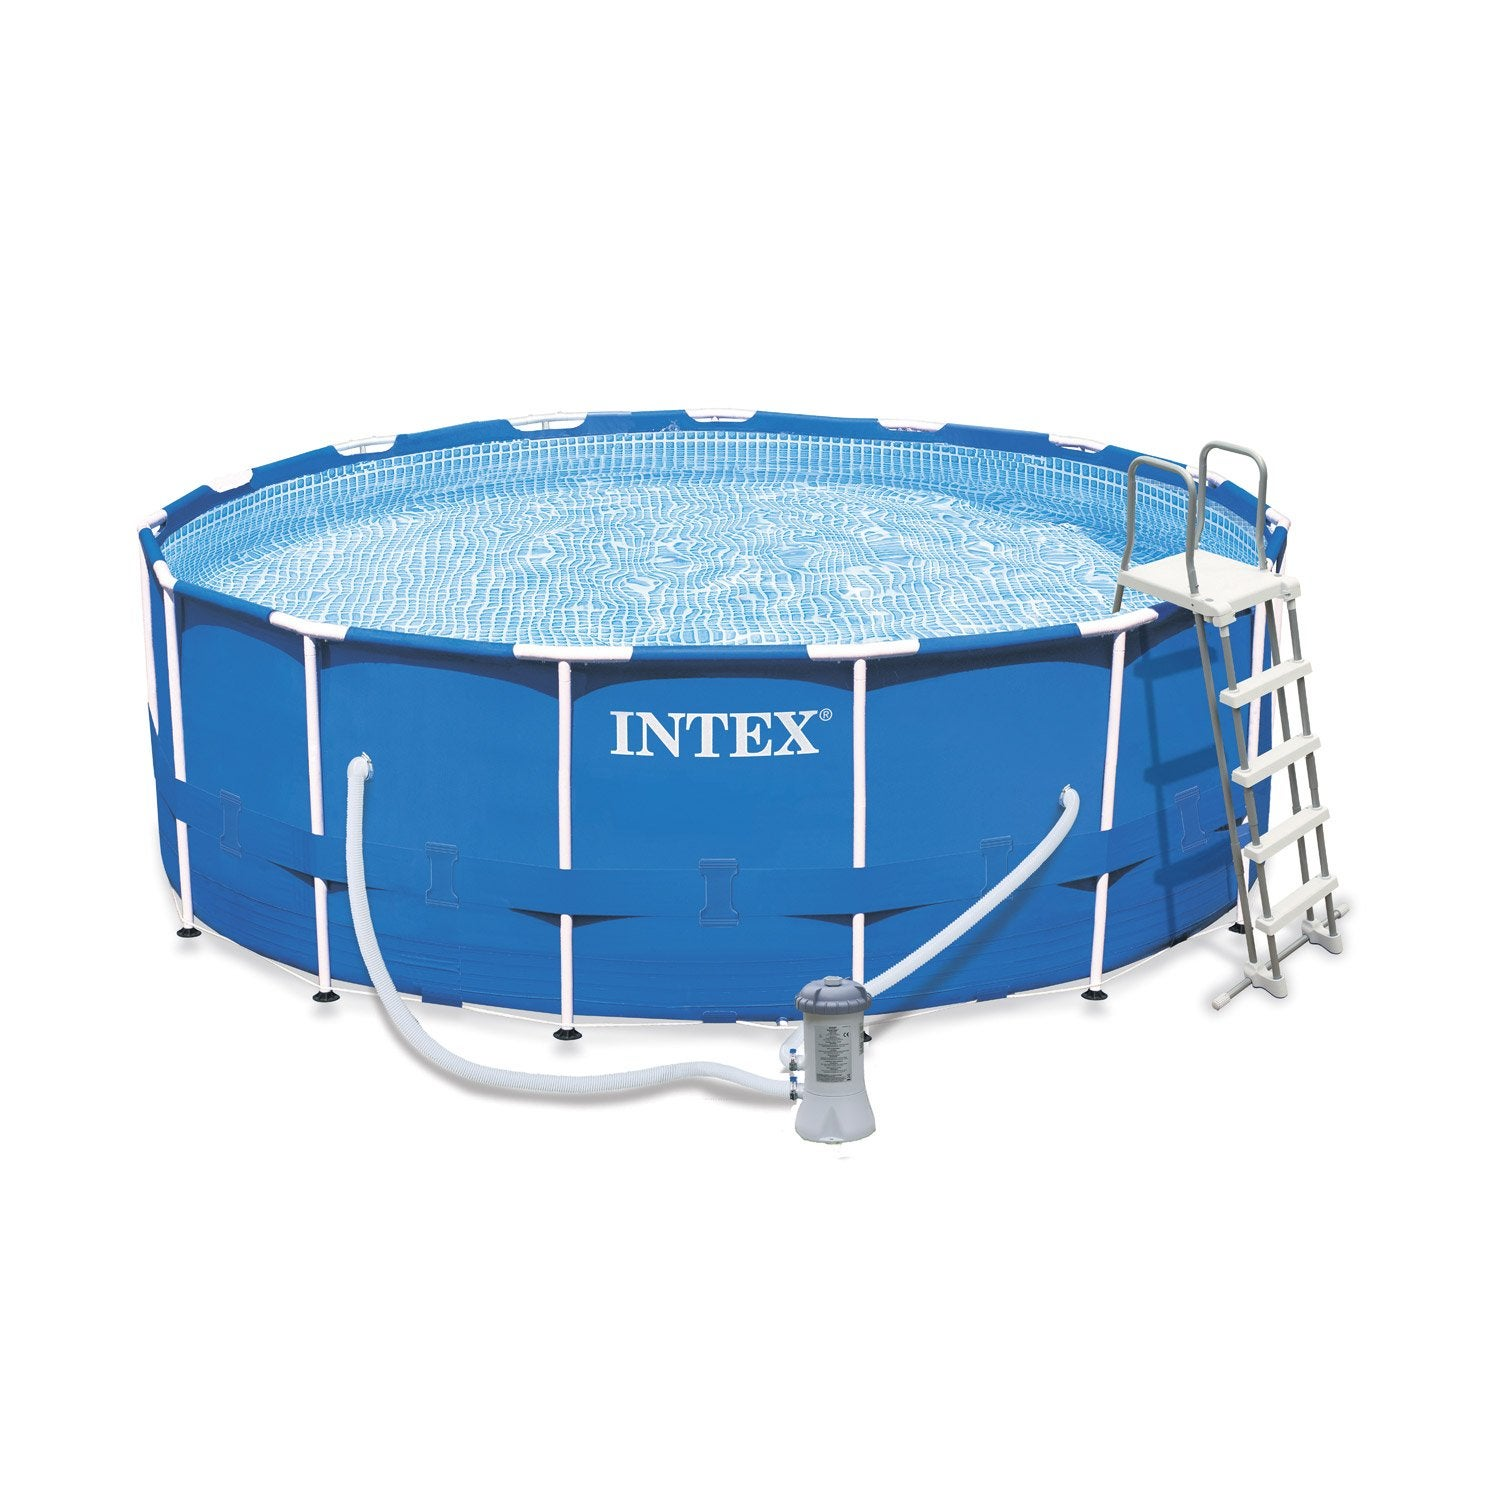 Piscine hors sol autoportante tubulaire metal frame intex for Piscine hors sol couverte